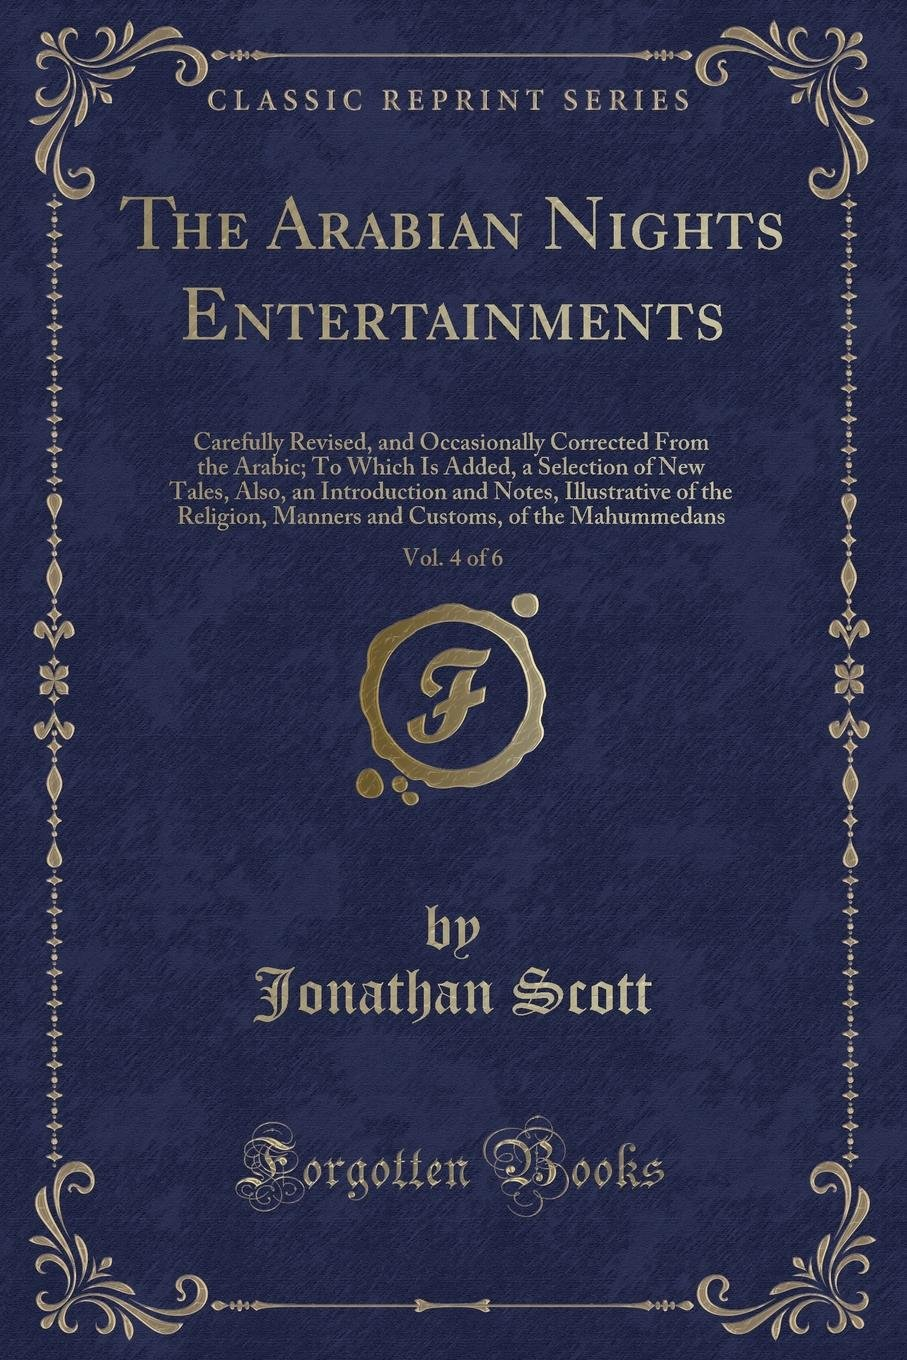 Read Online The Arabian Nights Entertainments, Vol. 4 of 6: Carefully Revised, and Occasionally Corrected From the Arabic; To Which Is Added, a Selection of New ... Manners and Customs, of the Mahummed pdf epub